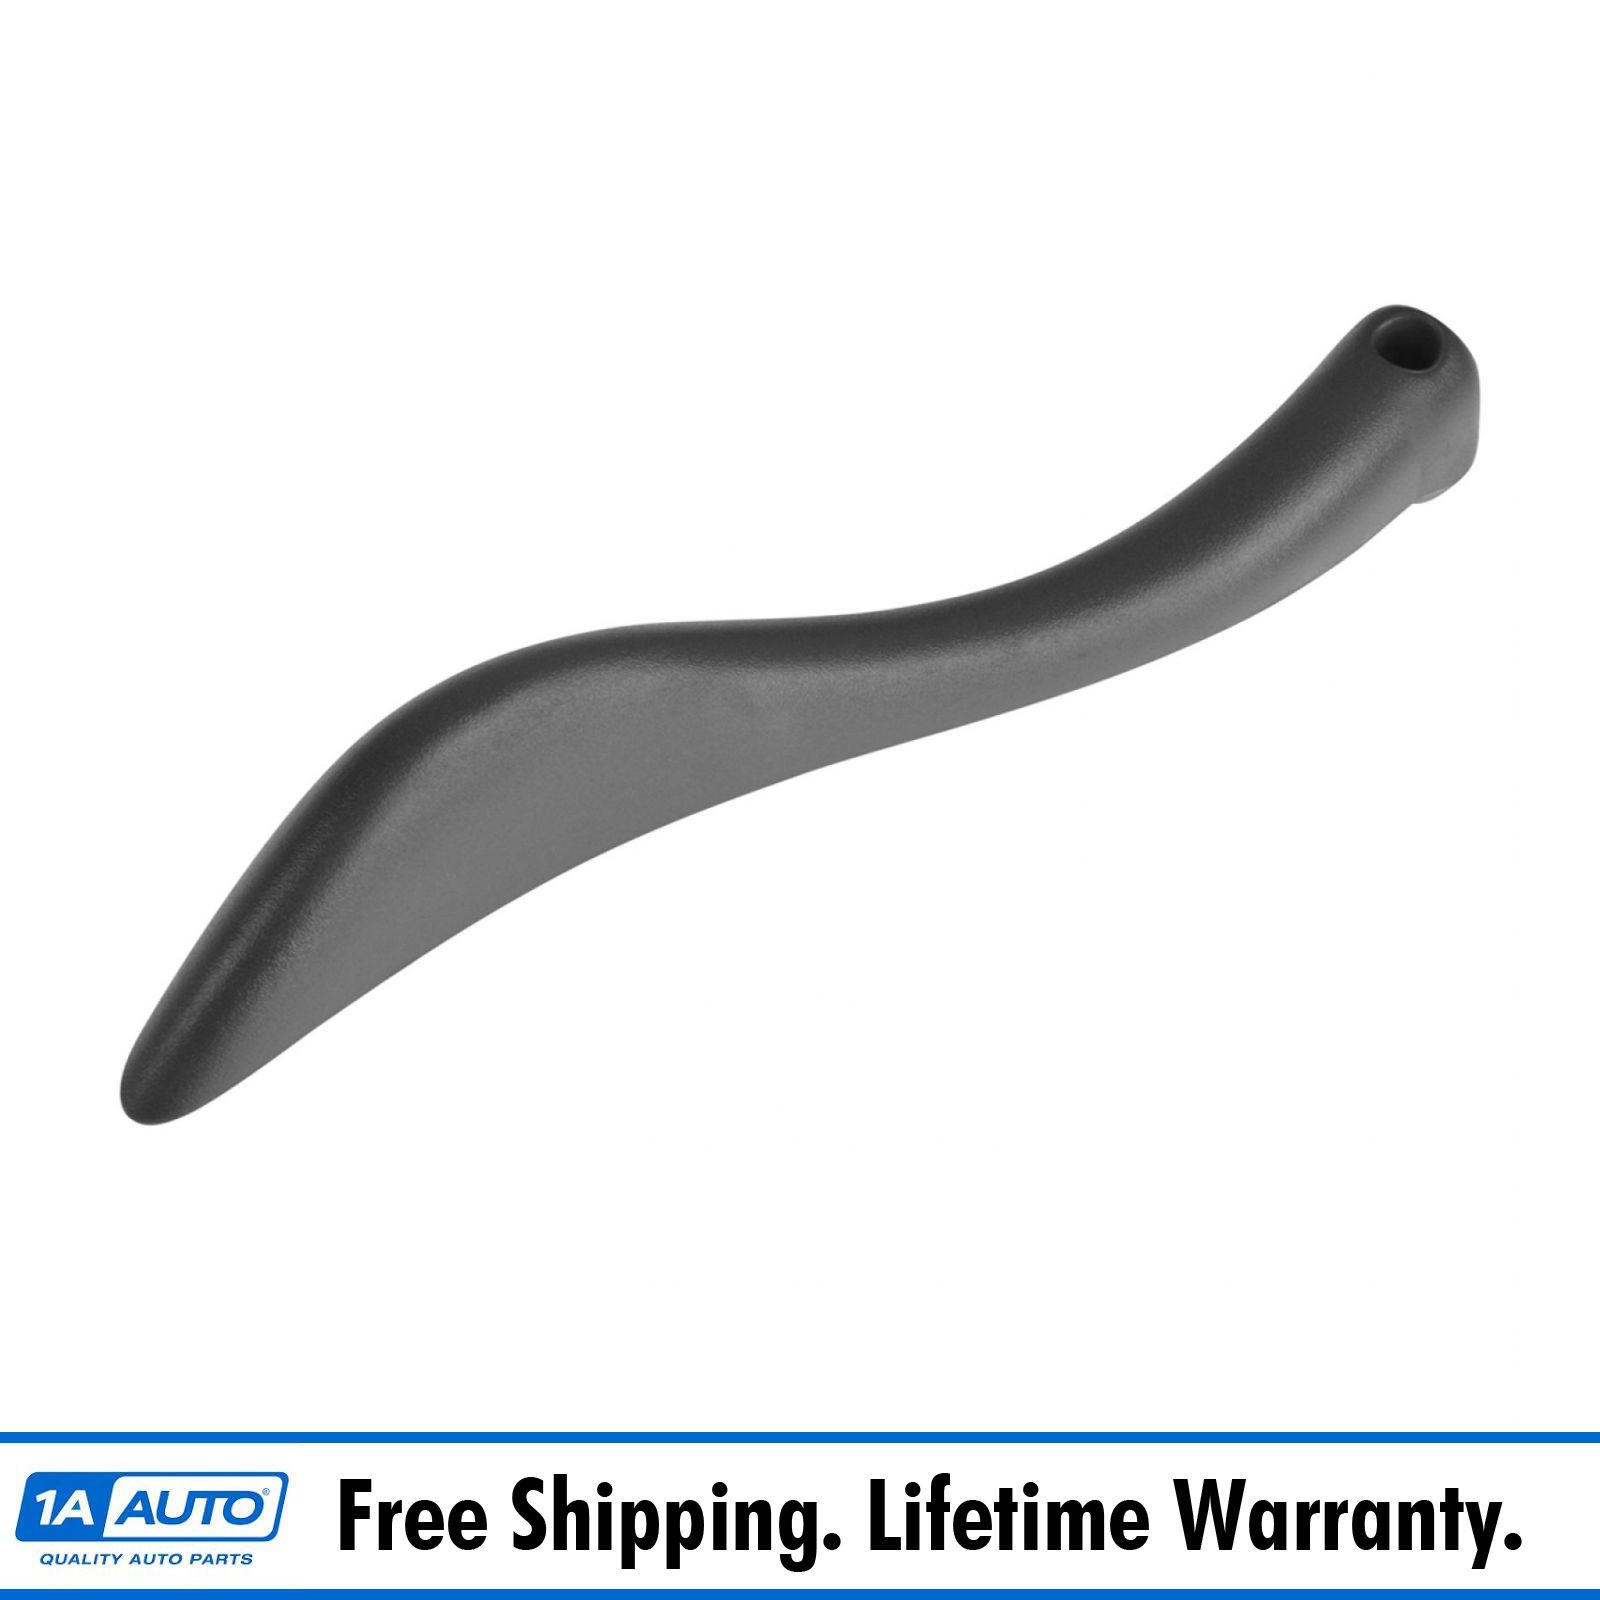 LH Front //Black Seat Recliner Lever HANDLE new OEM FOR Chevrolet GMC Trucks